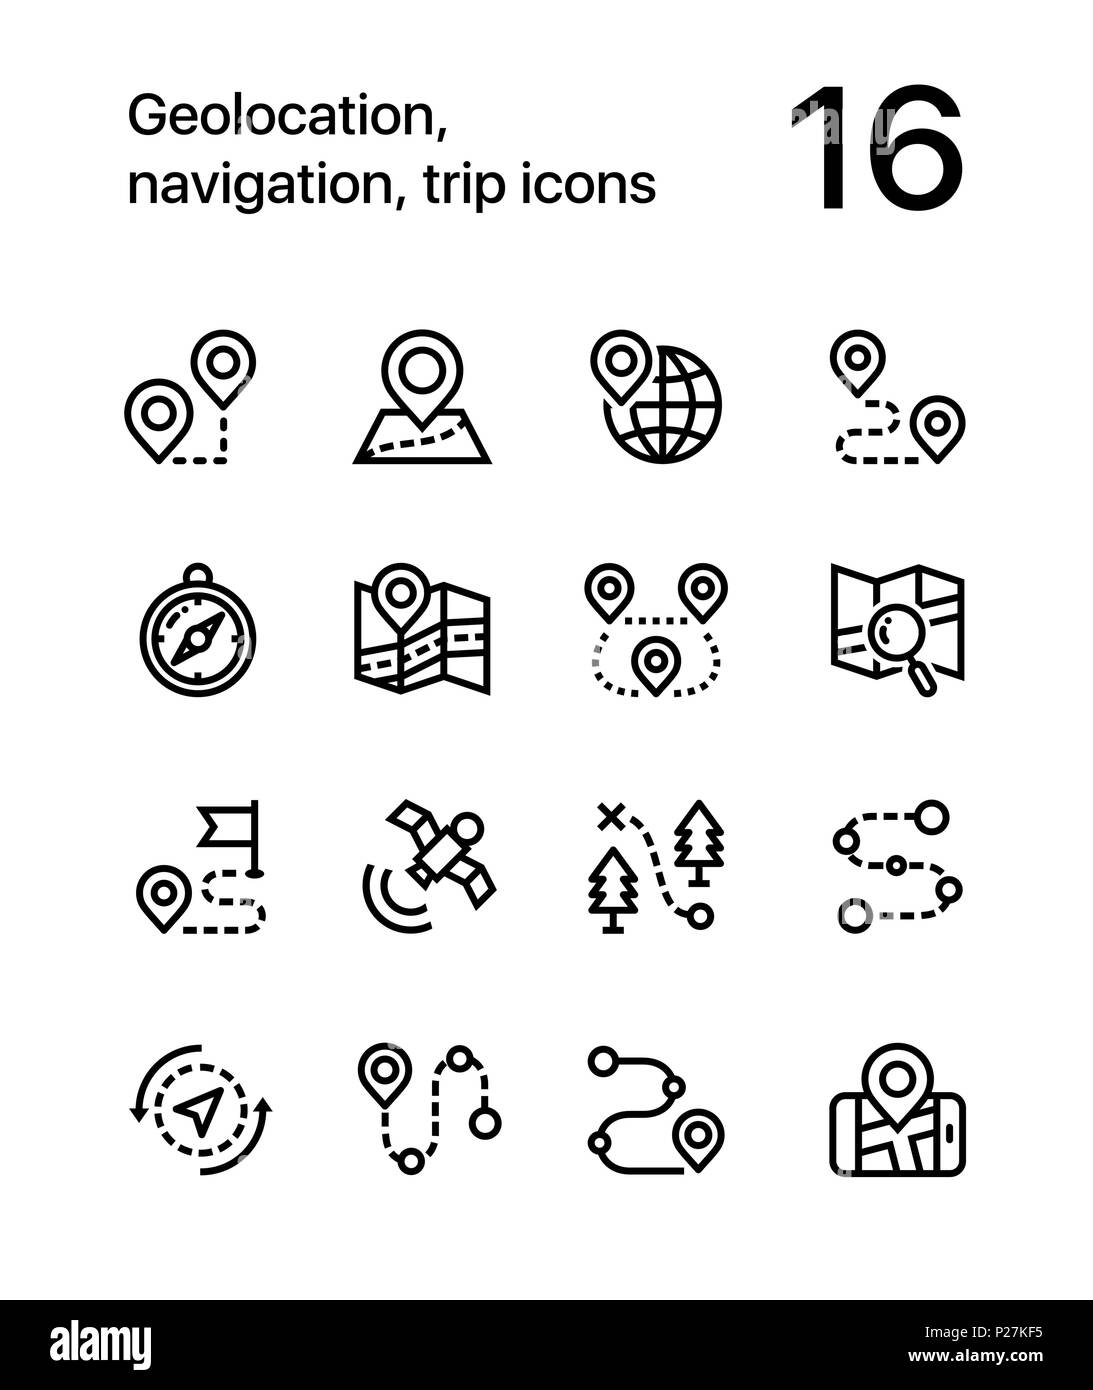 Geolocation, navigation, trip icons for web and mobile design pack 1 - Stock Vector